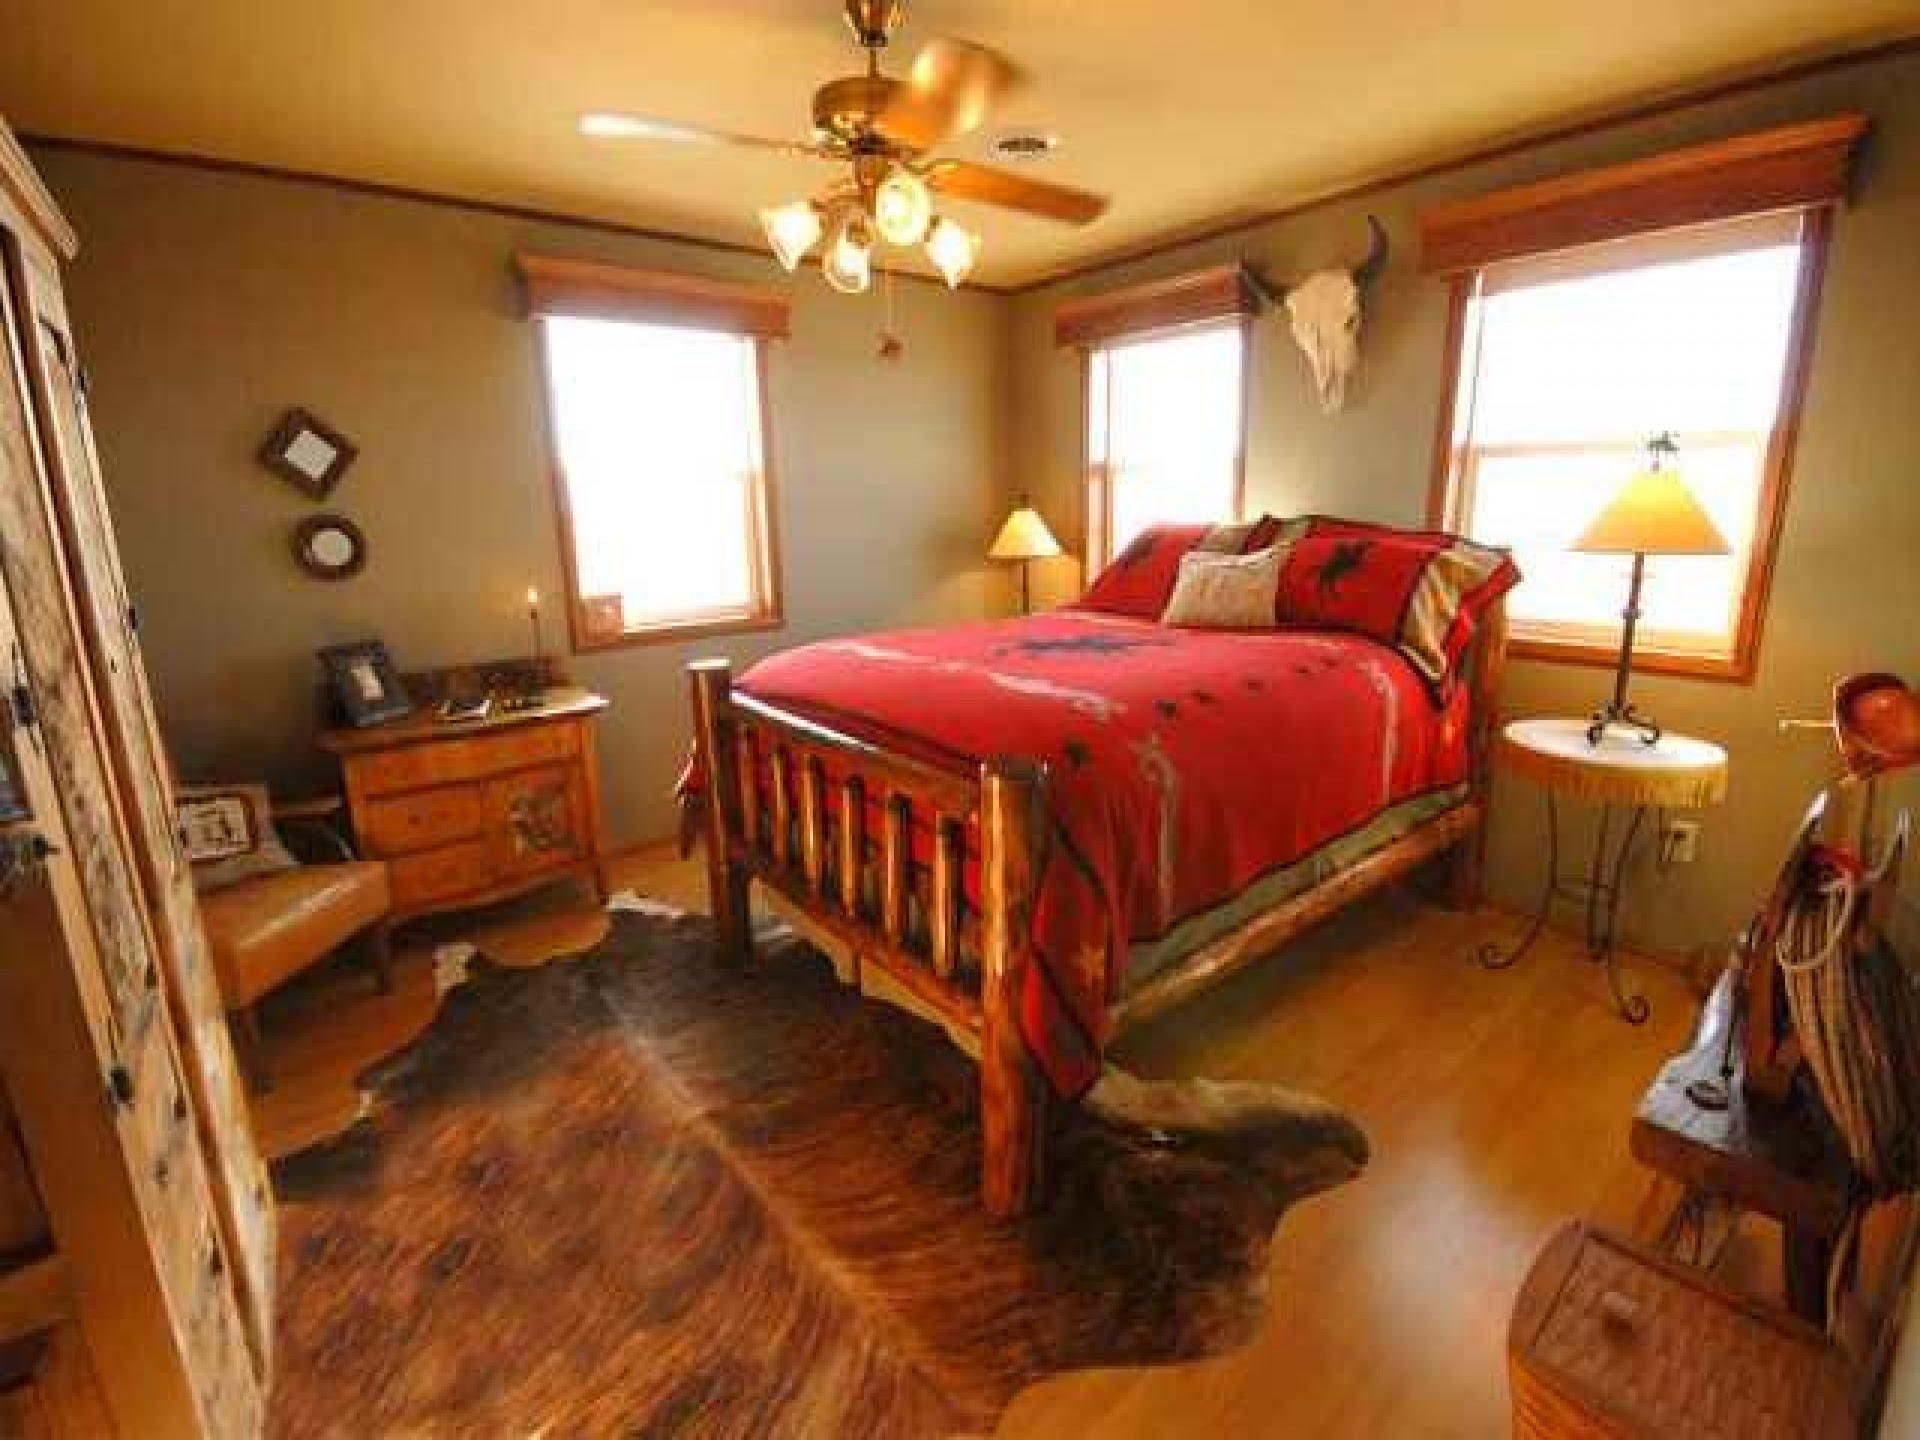 Traditional Cowboy Home Decor The Warm Homey Situation Western Bedroom Ideas Atmosphere Dallas Cowboys Wholesale Rustic Old West Sports Team Apppie Org